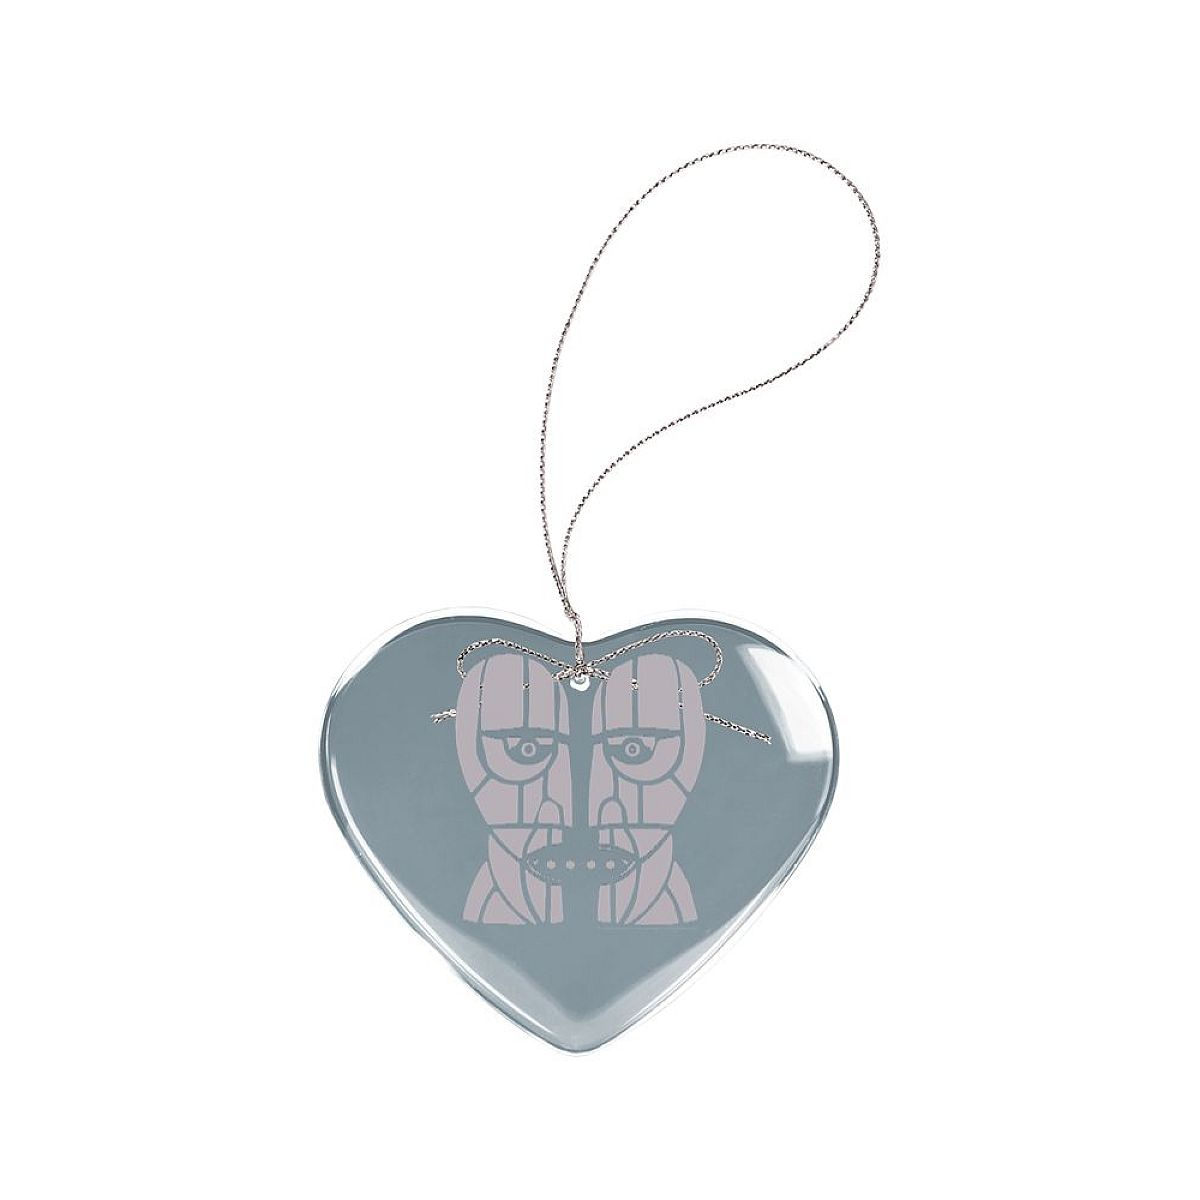 Stoneheads Heart Laser-Etched Glass Ornament